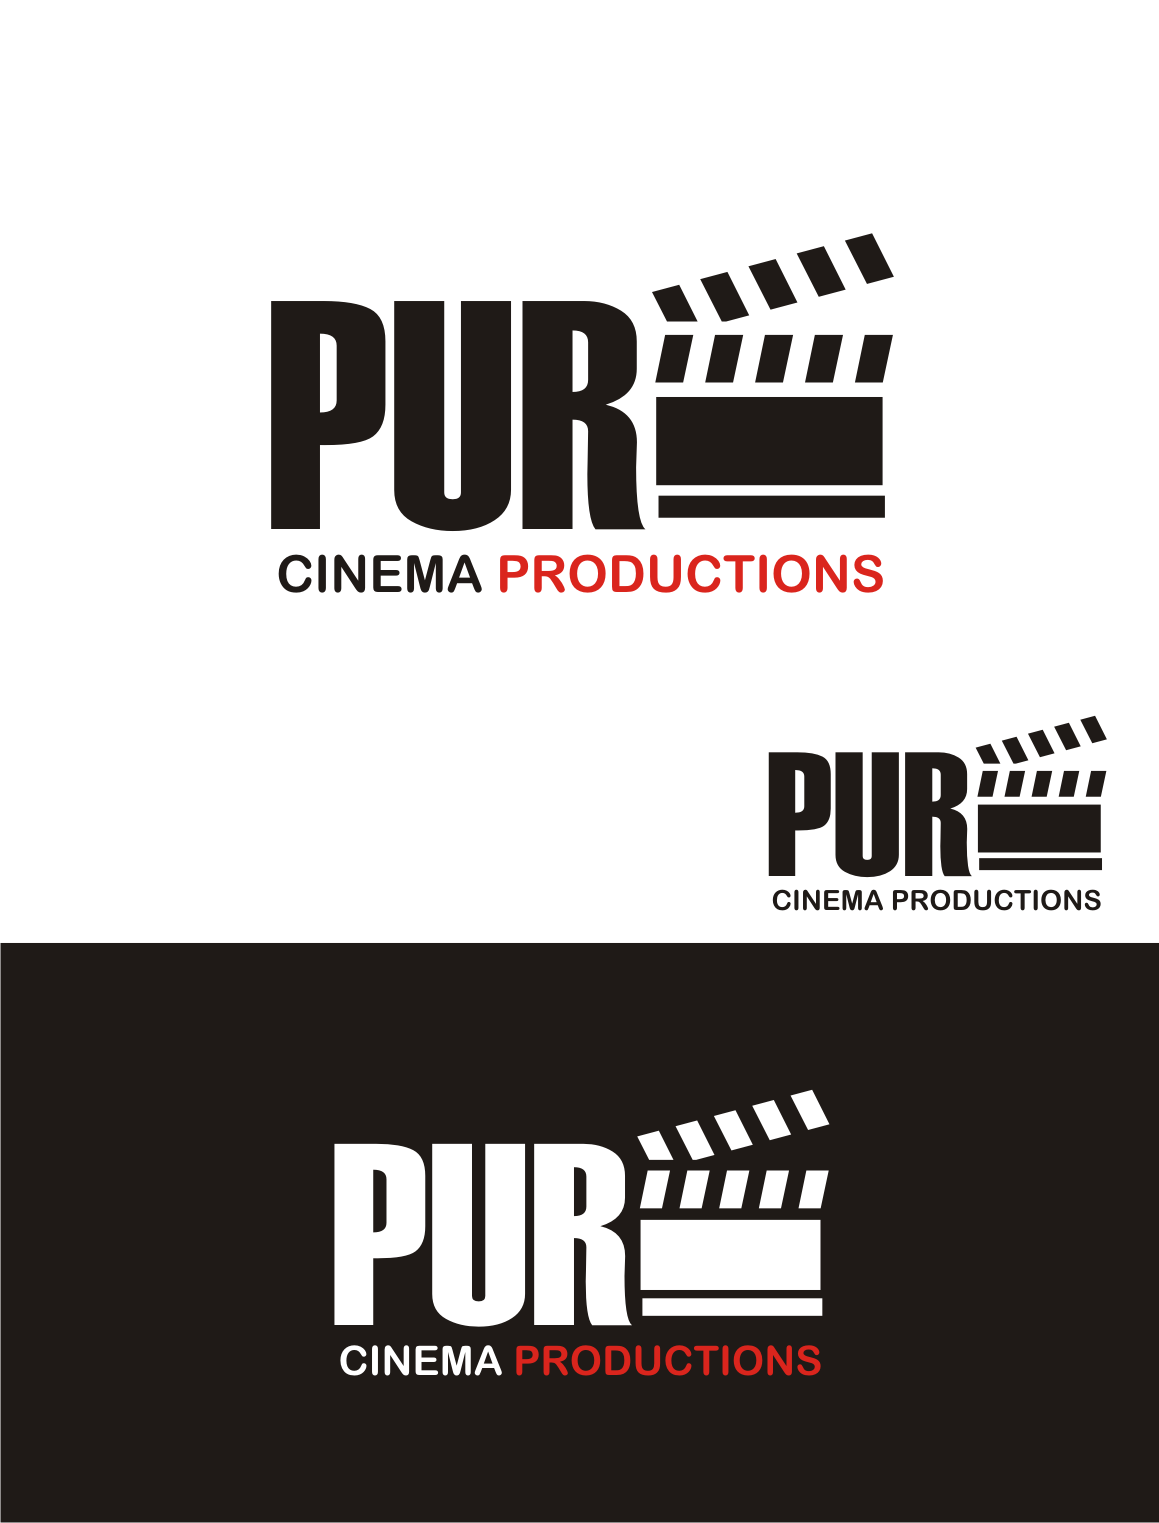 Logo Design by Nthus Nthis - Entry No. 12 in the Logo Design Contest Imaginative Logo Design for Pure Cinema.